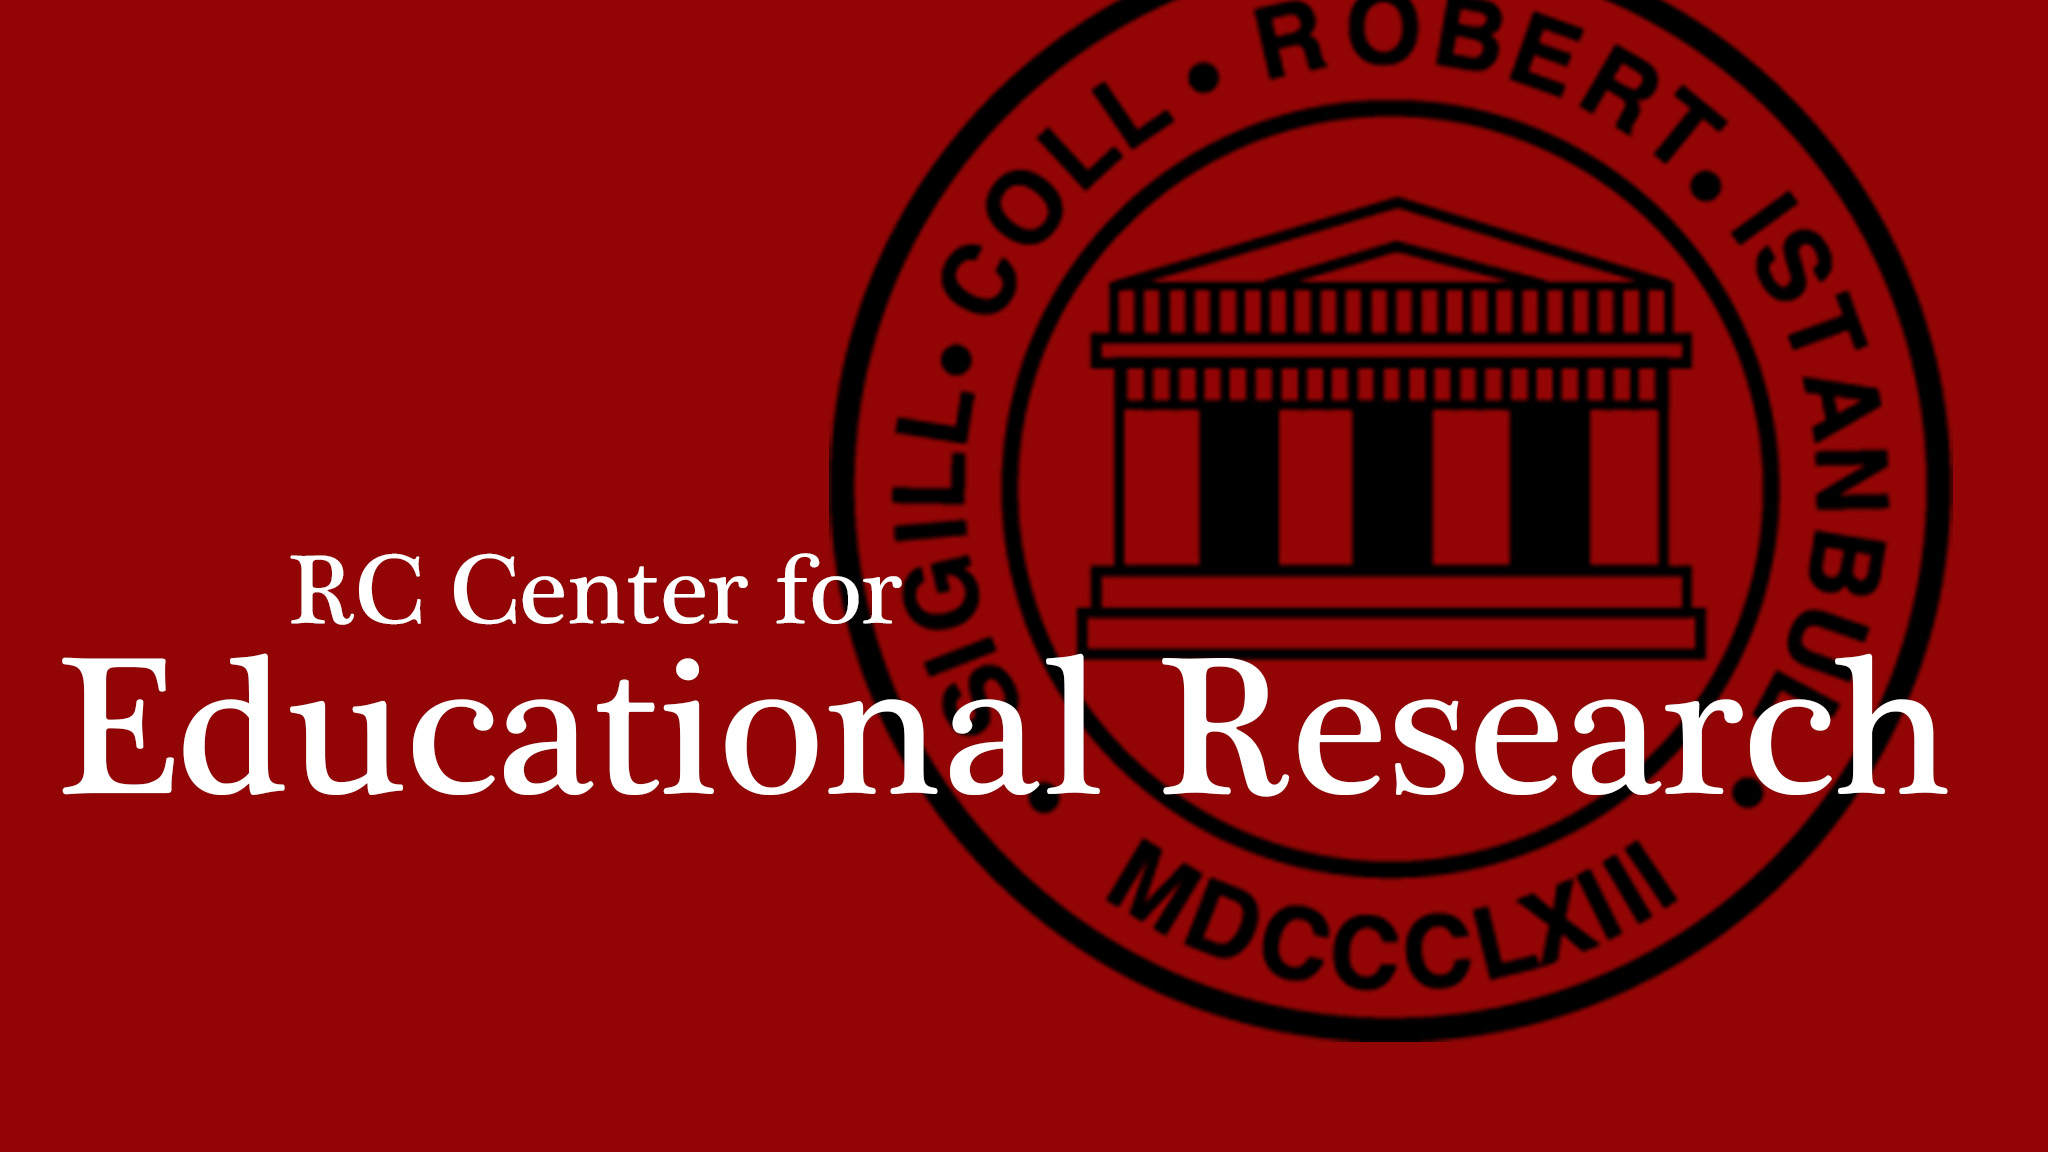 RC Center for Educational Research Logo